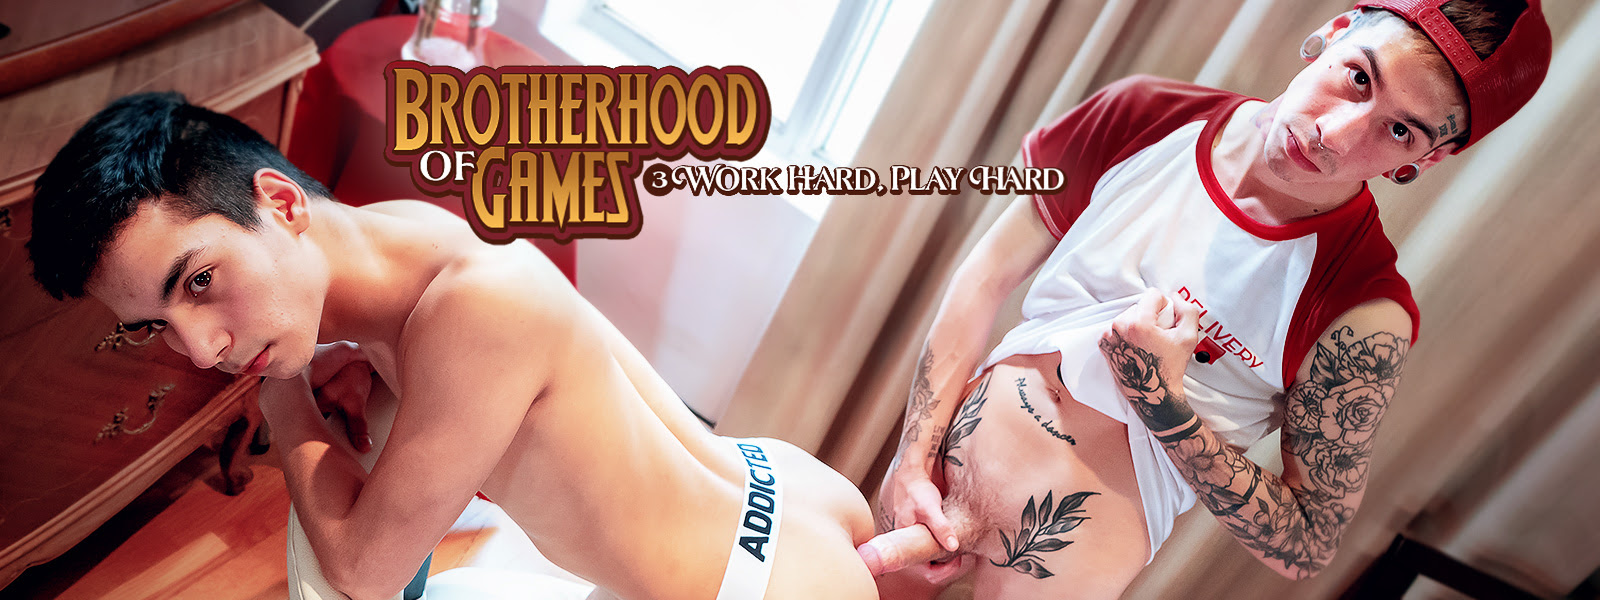 Brotherhood of Games | Ch. 3 Work Hard, Play Hard